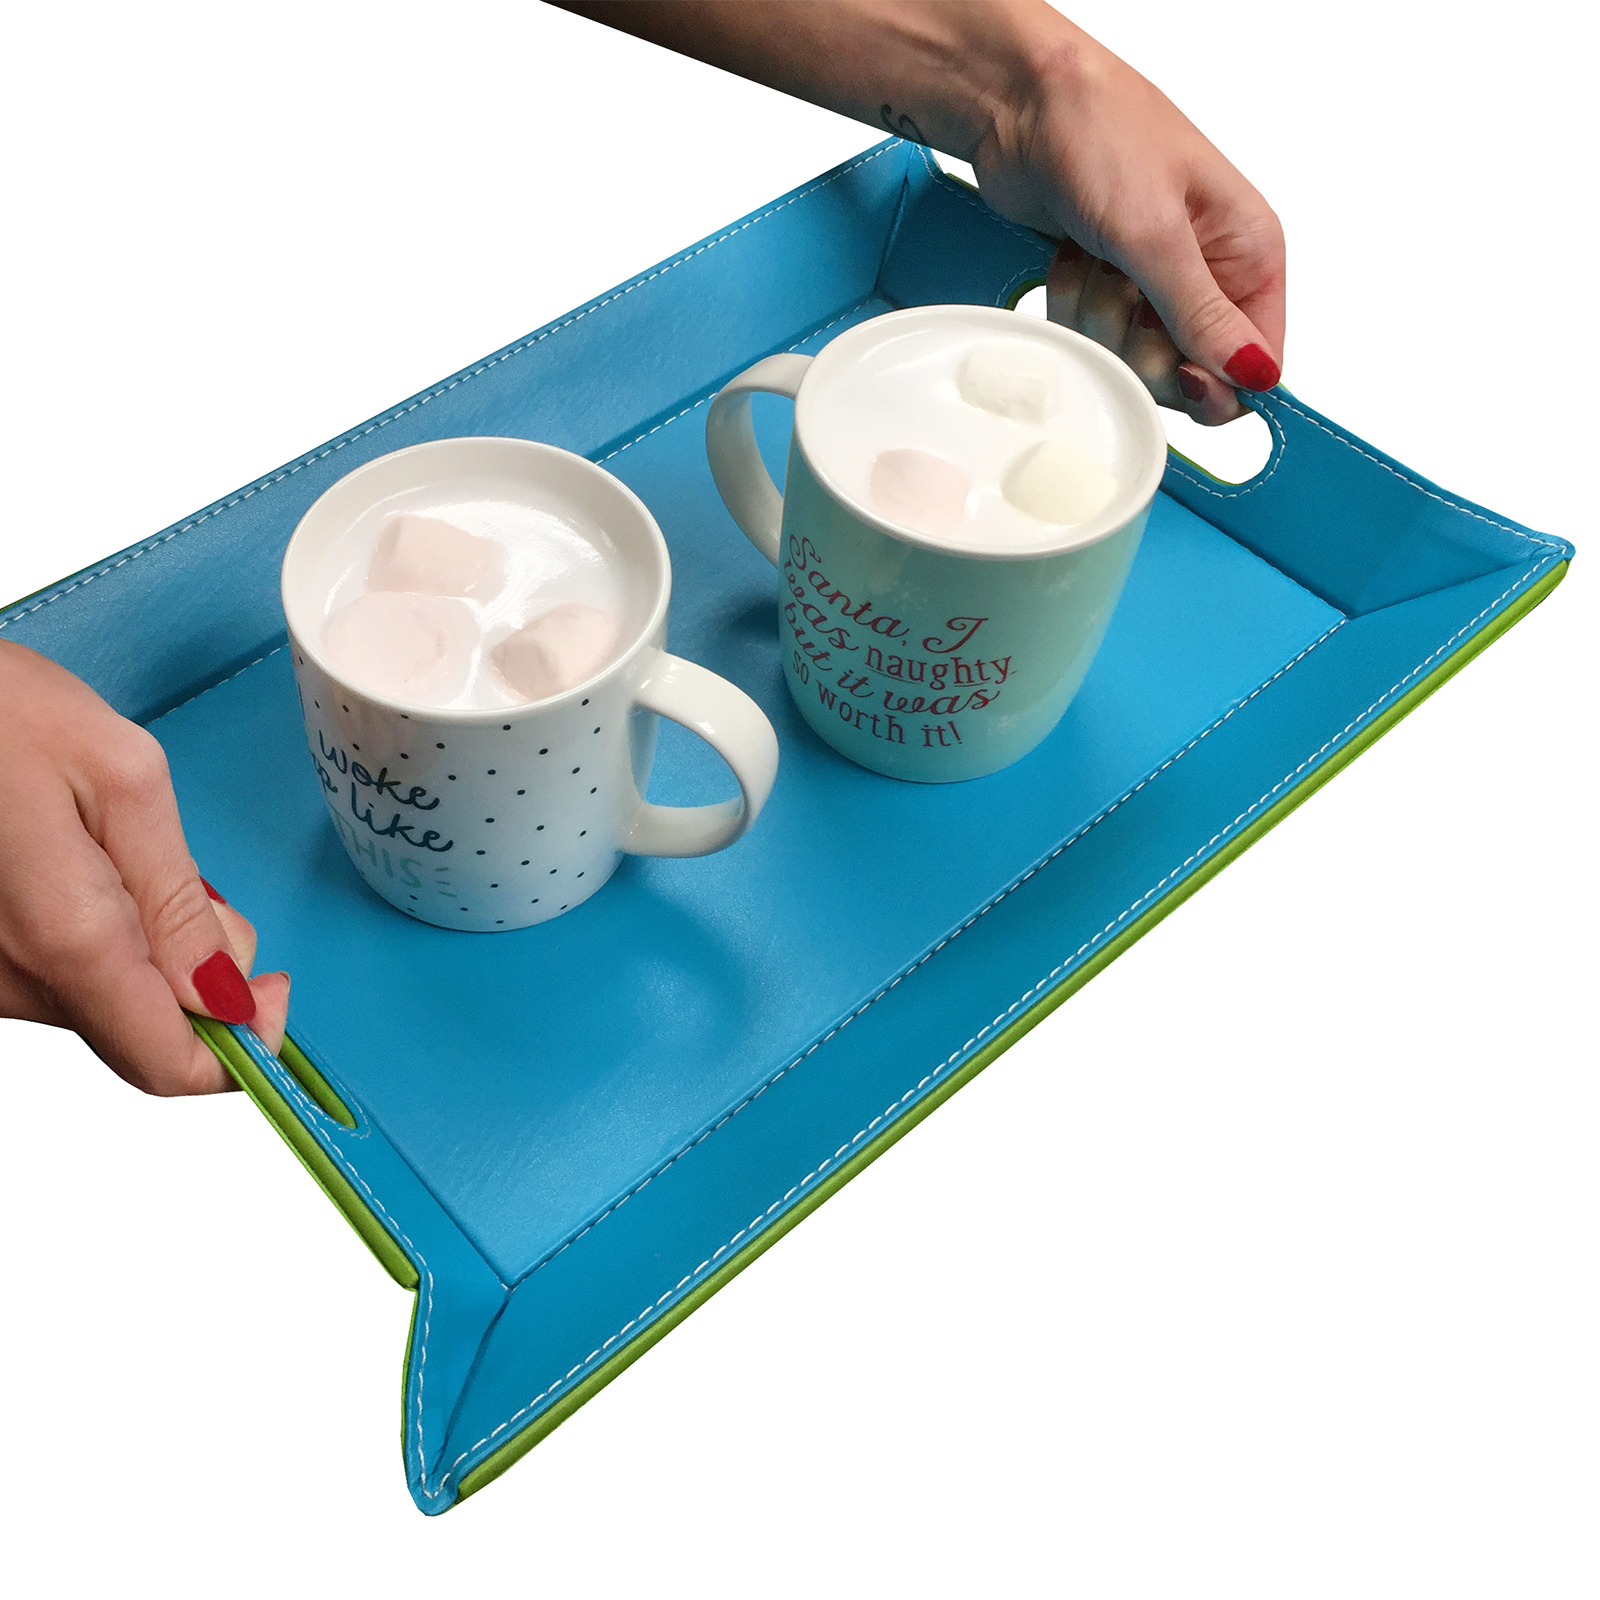 Image Result For Breakfast Tray Ikea